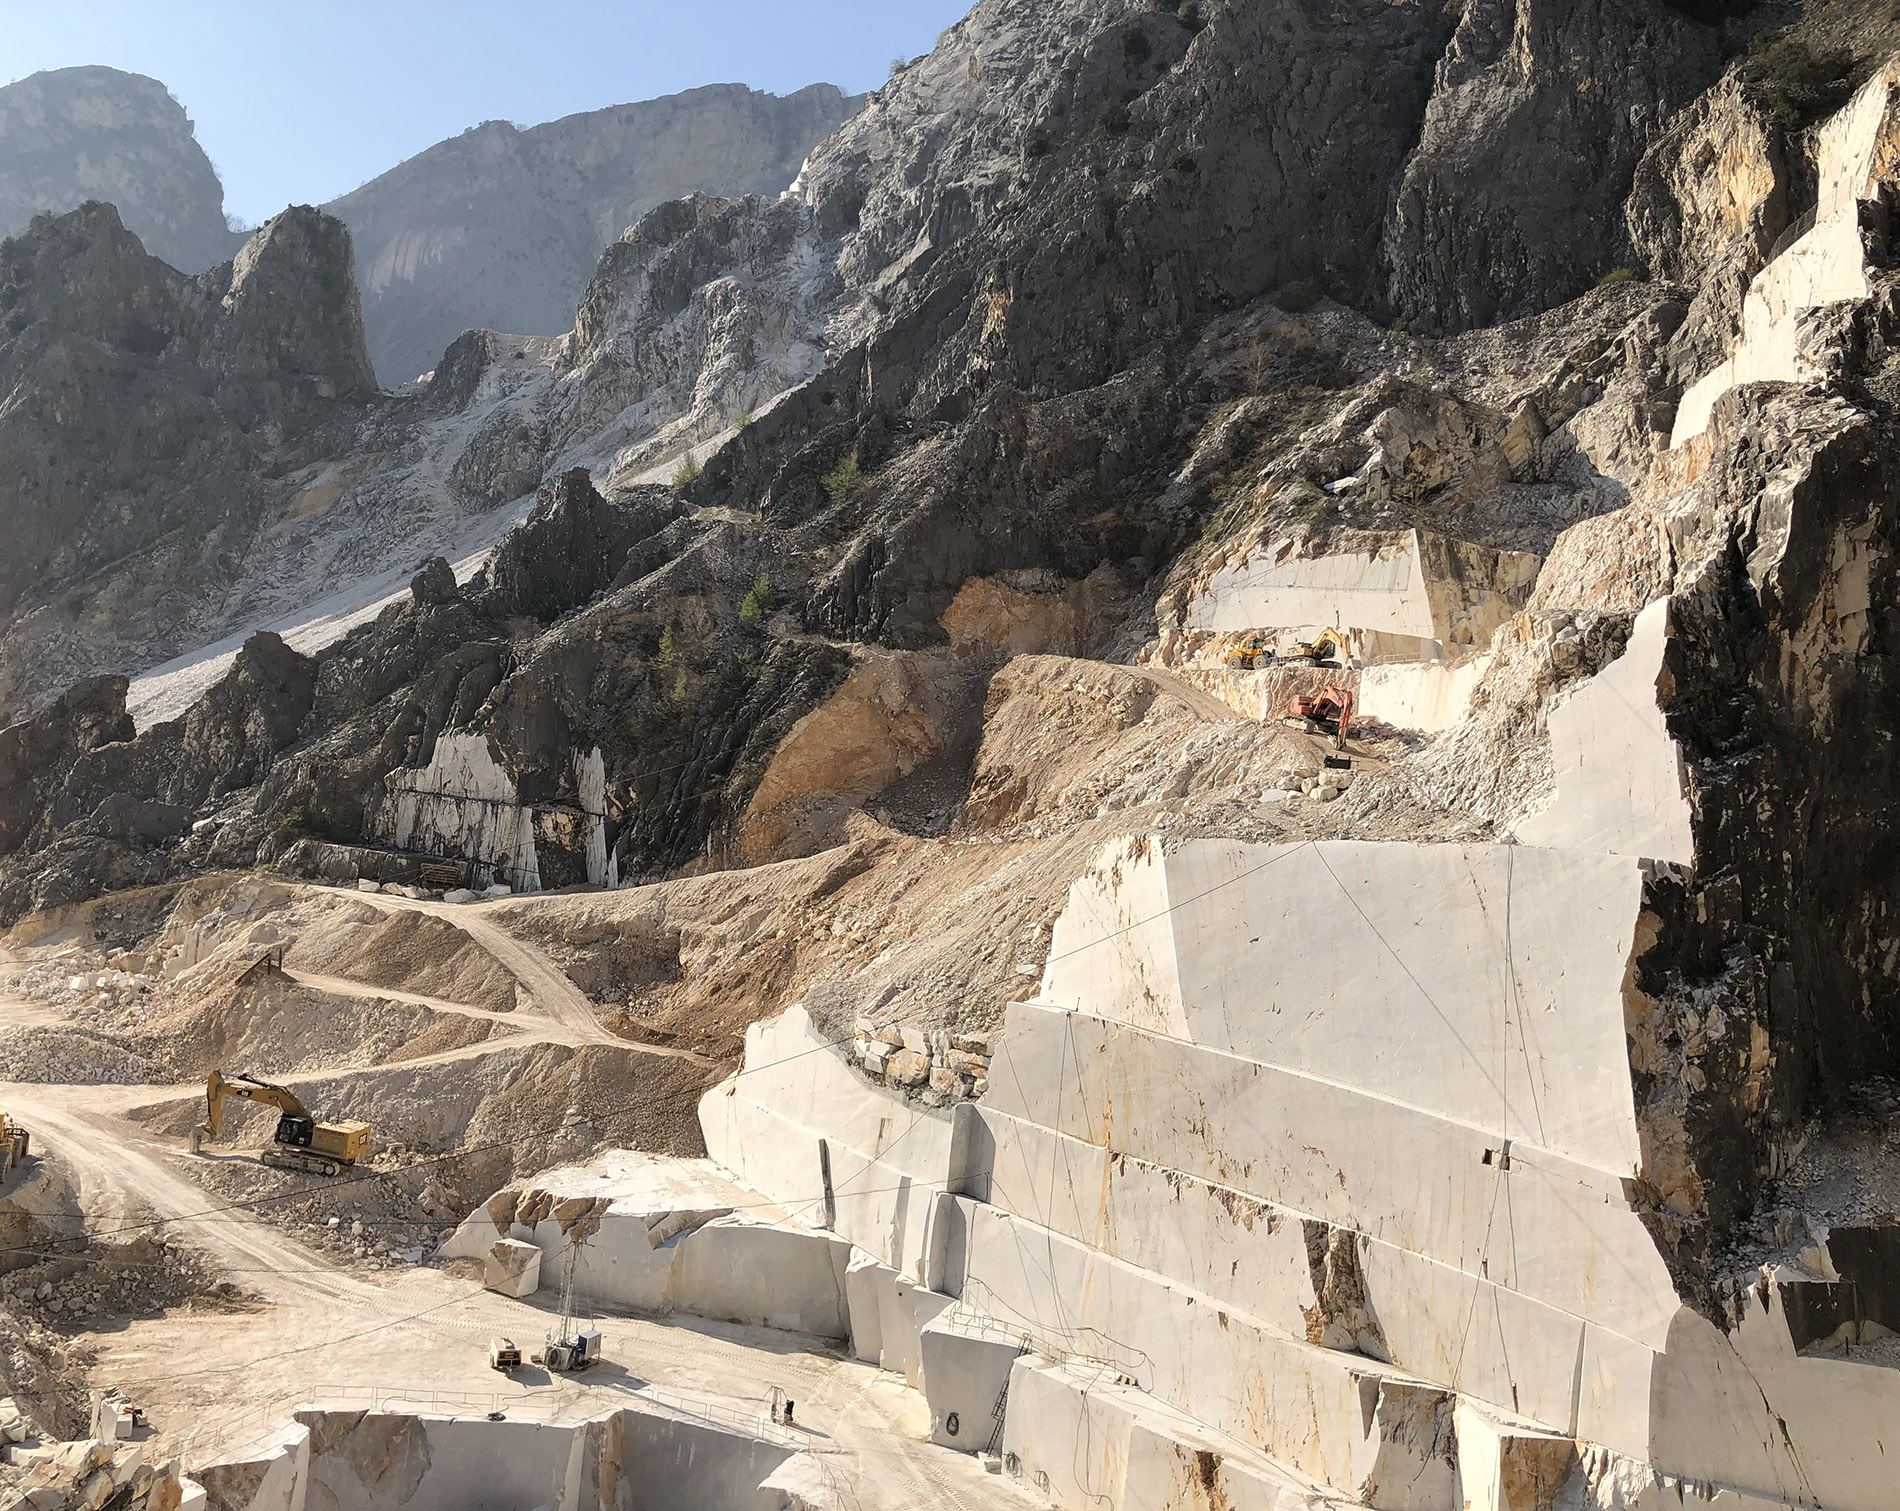 Marble quarry in Cararra, Italy